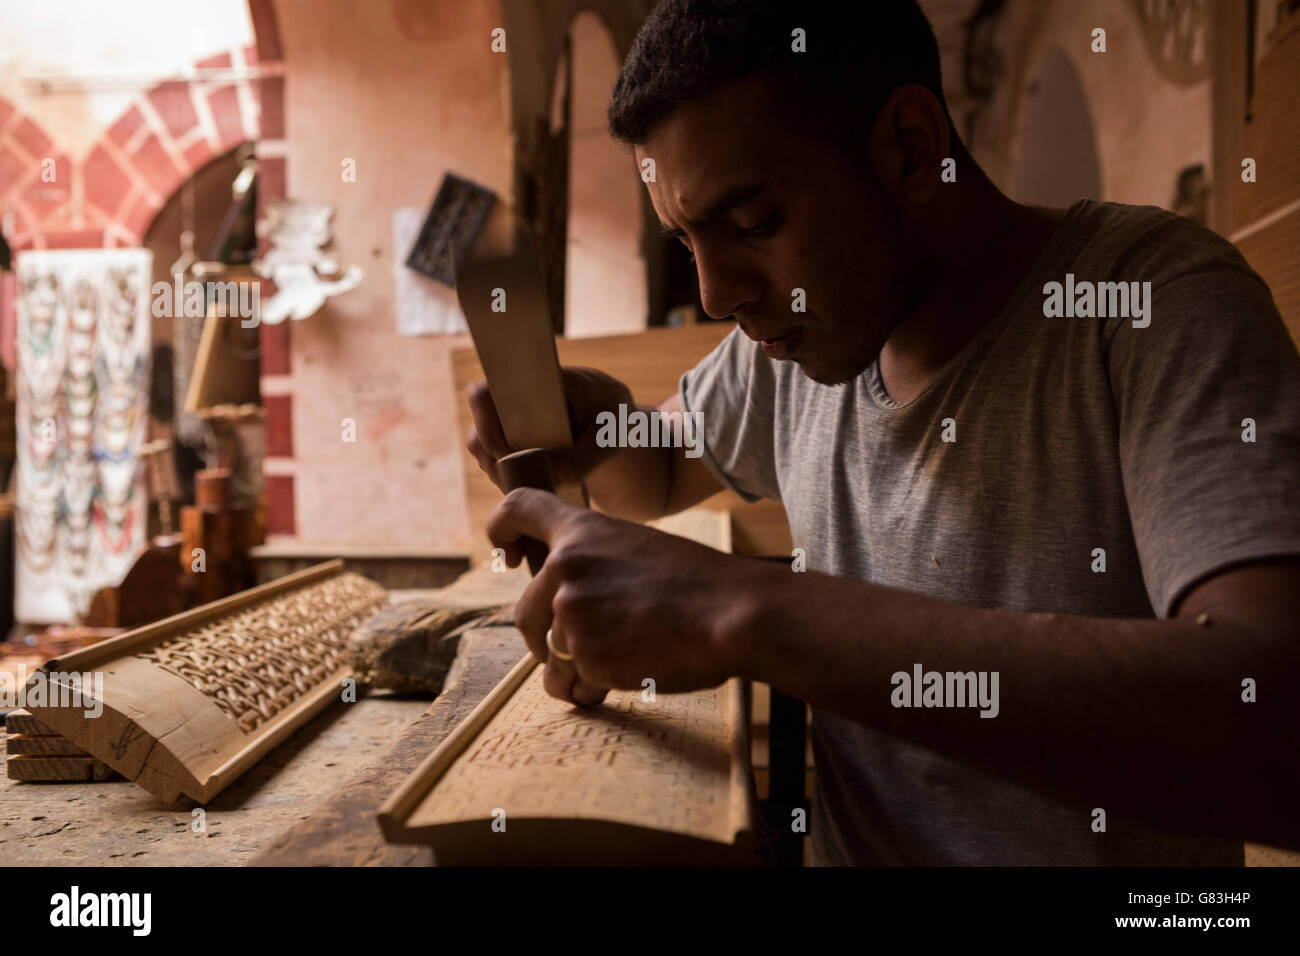 A woodworker artisan works in his workshop in the Marrakesh Medina, Morocco. Stock Photo